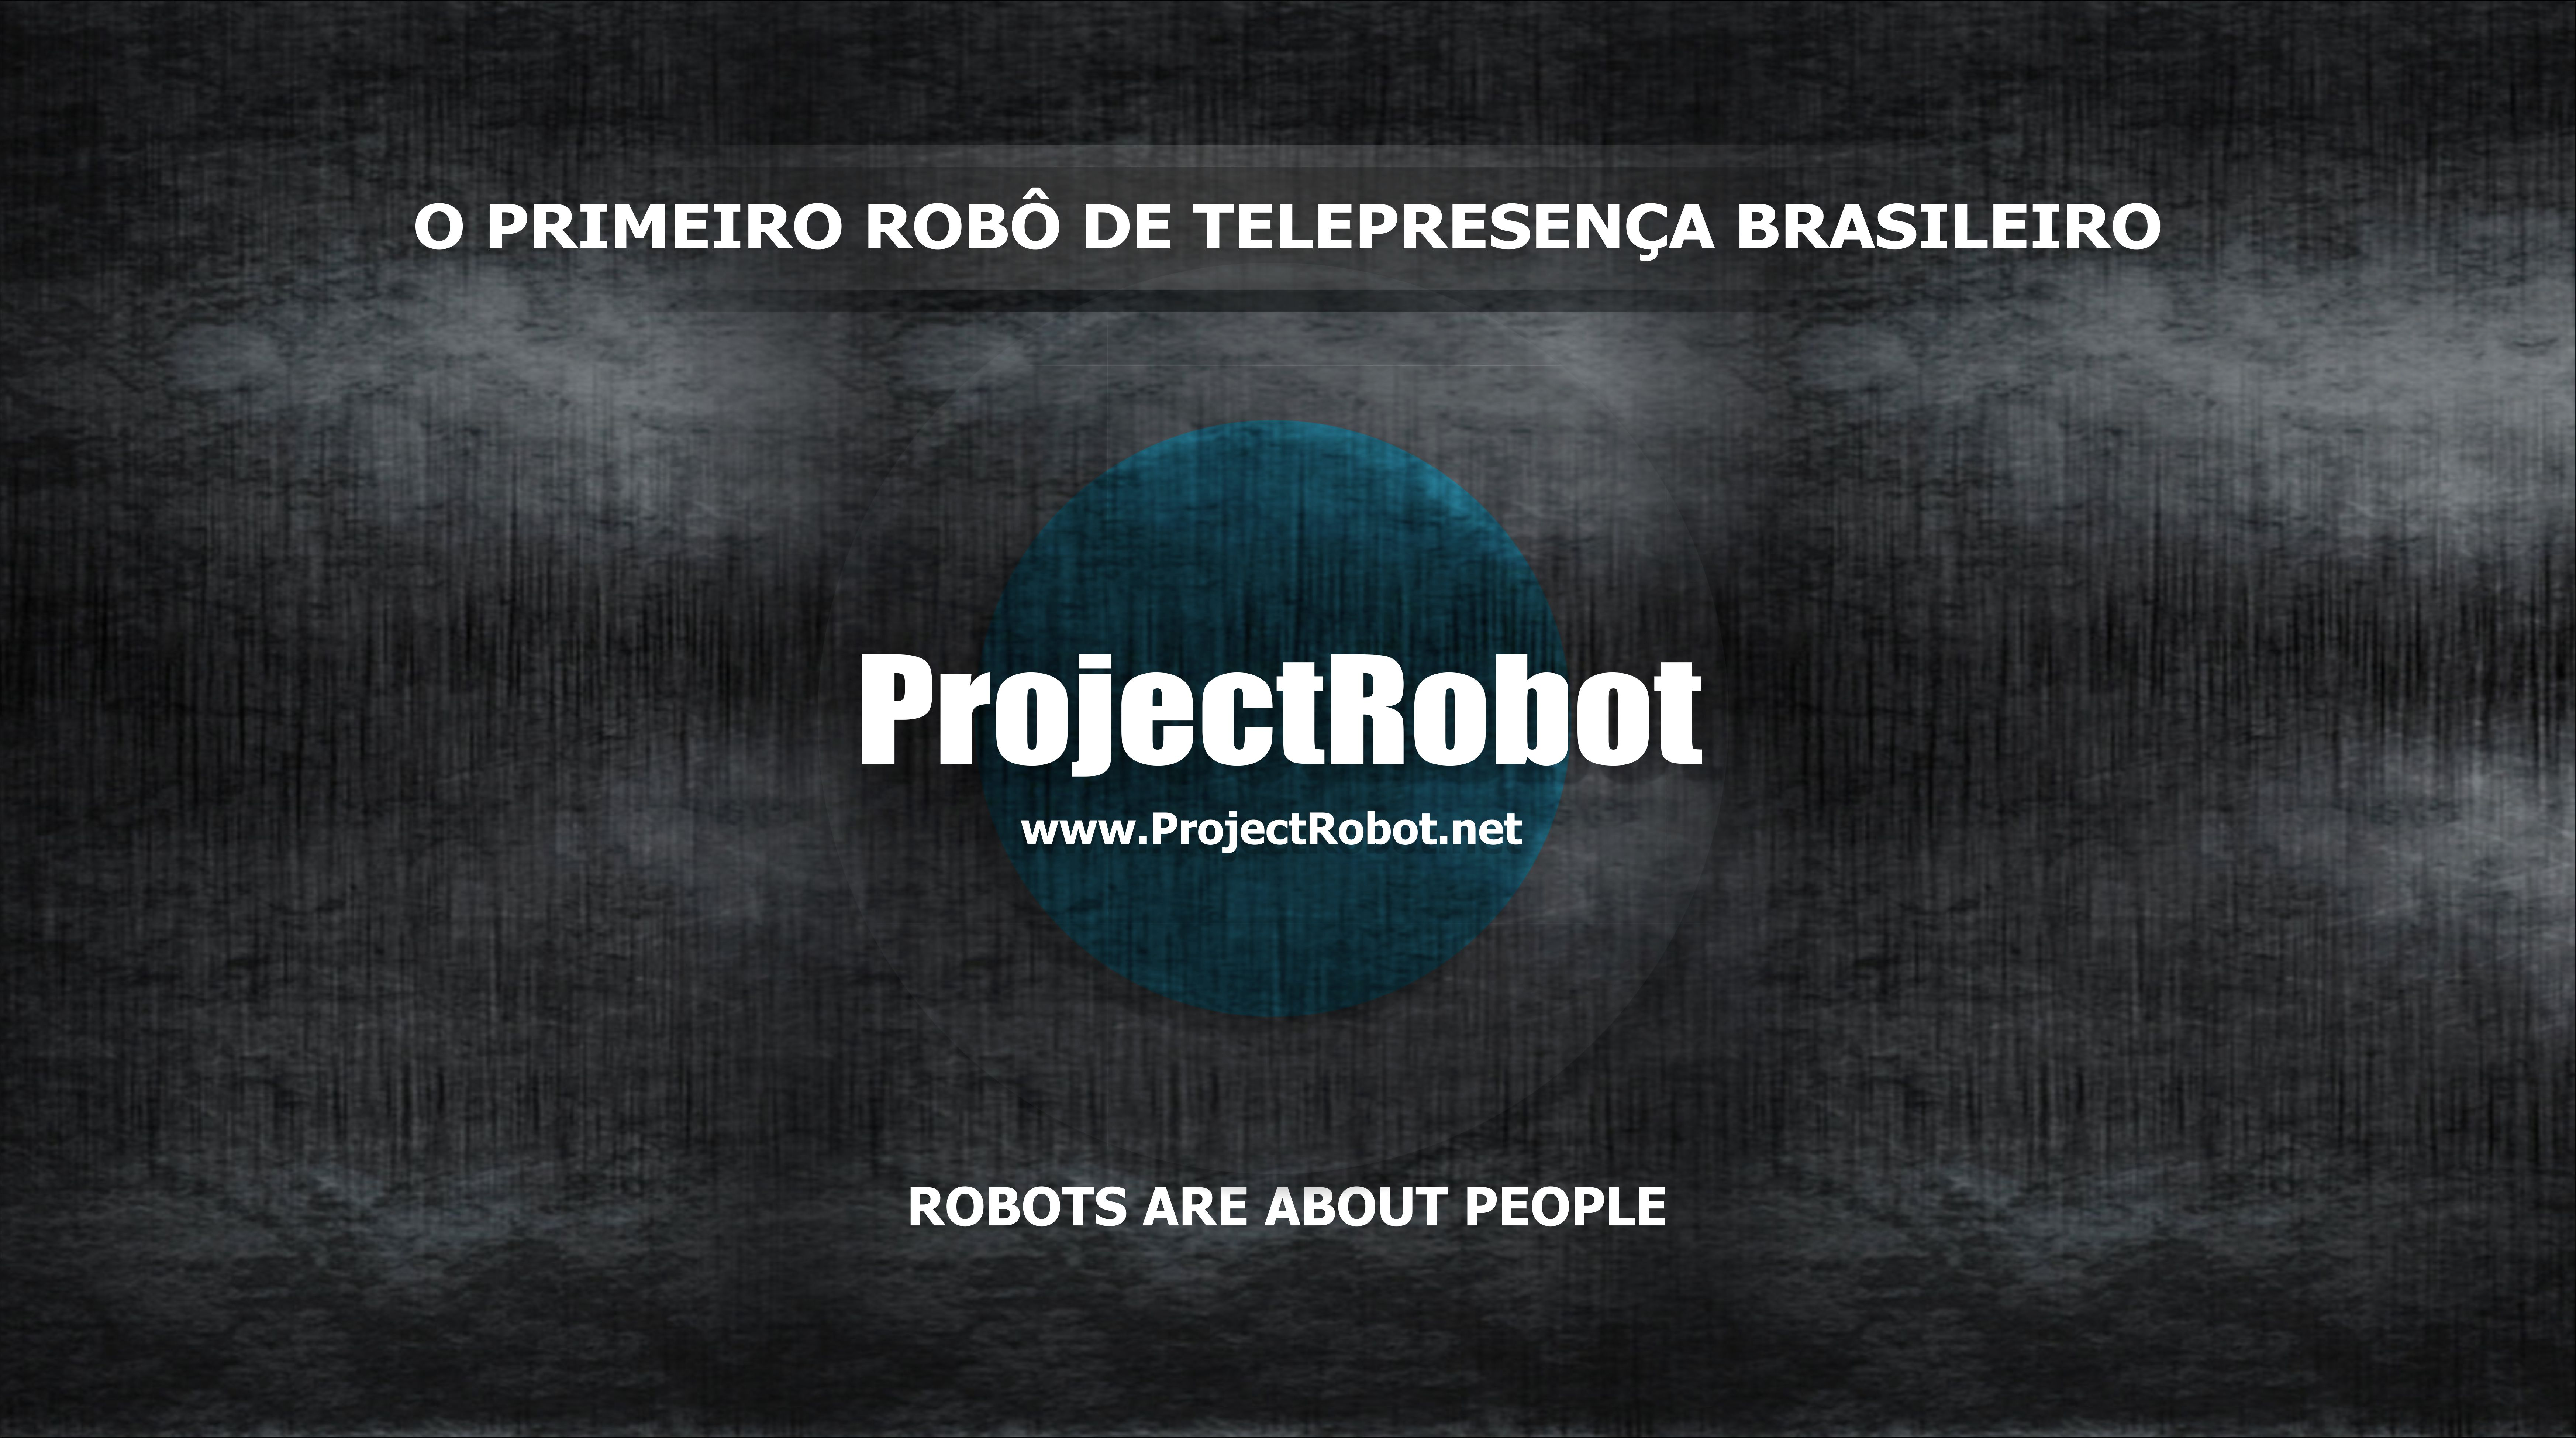 Project Robot